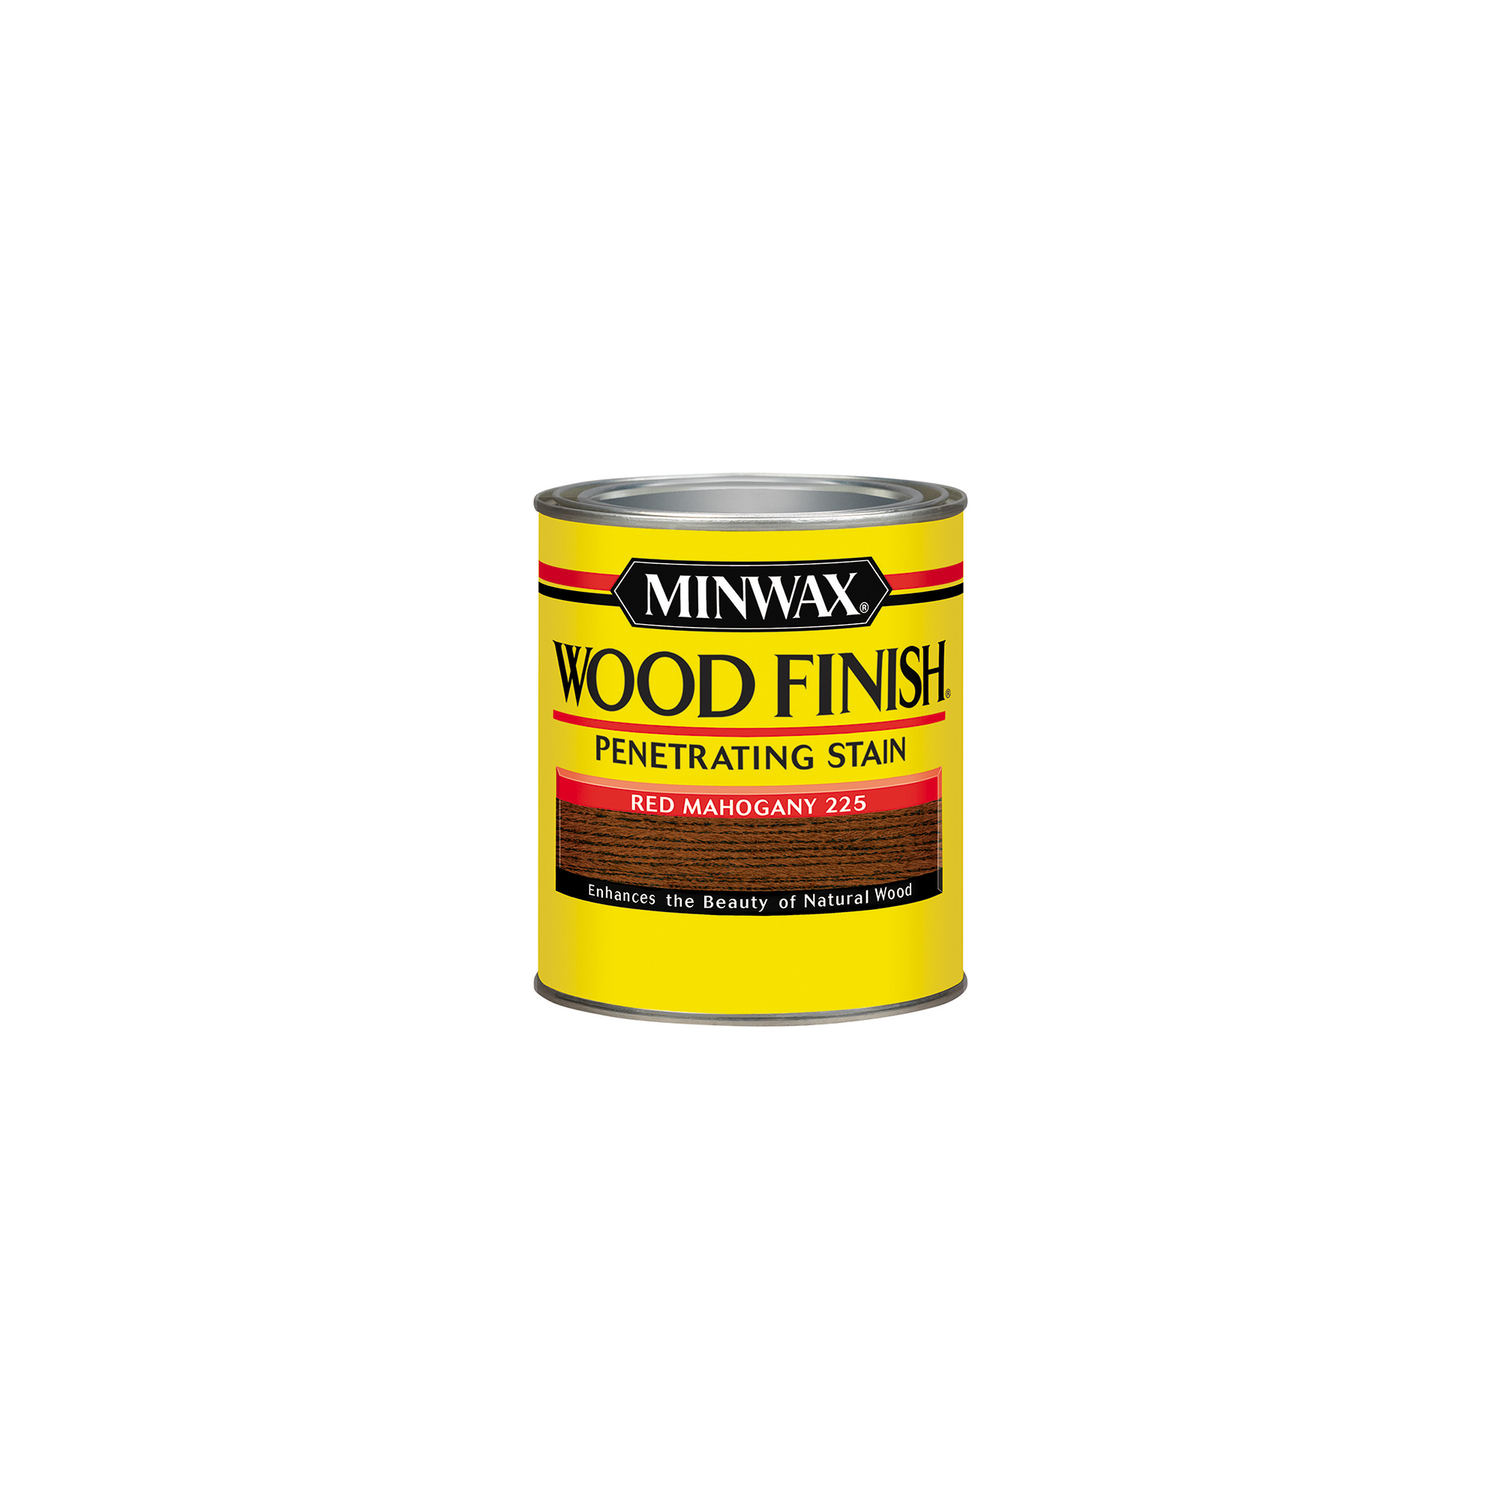 Minwax  Wood Finish  Semi-Transparent  Red Mahogany  Oil-Based  Oil  Wood Stain  0.5 pt.